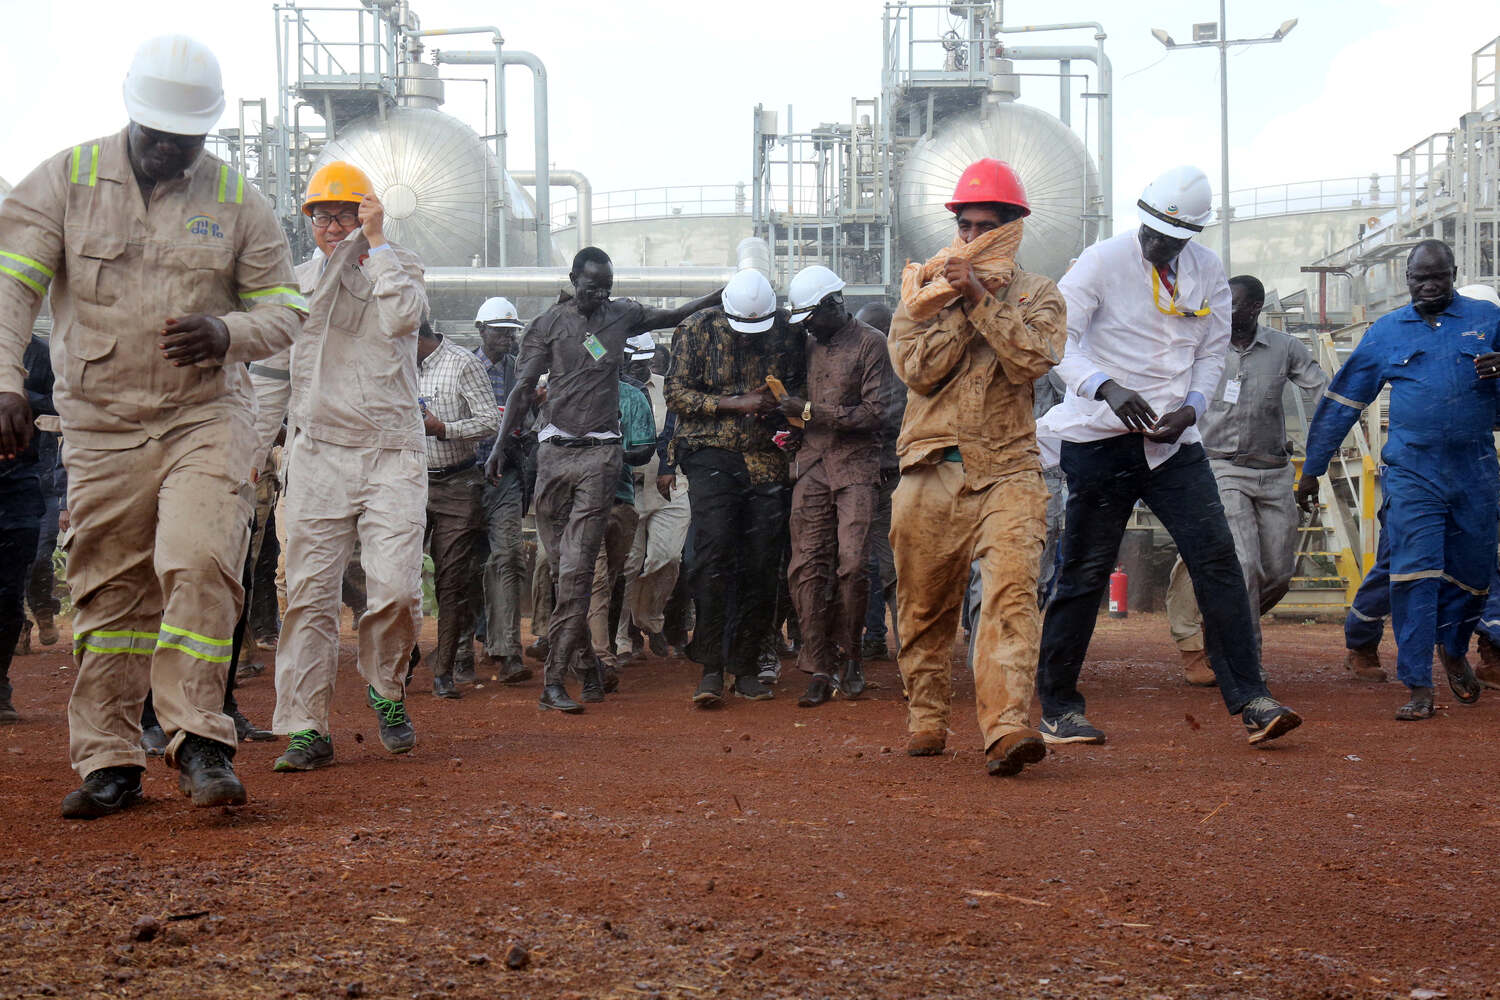 African Economies Haunted by Oil-Backed Loans as Traders Call in Debts